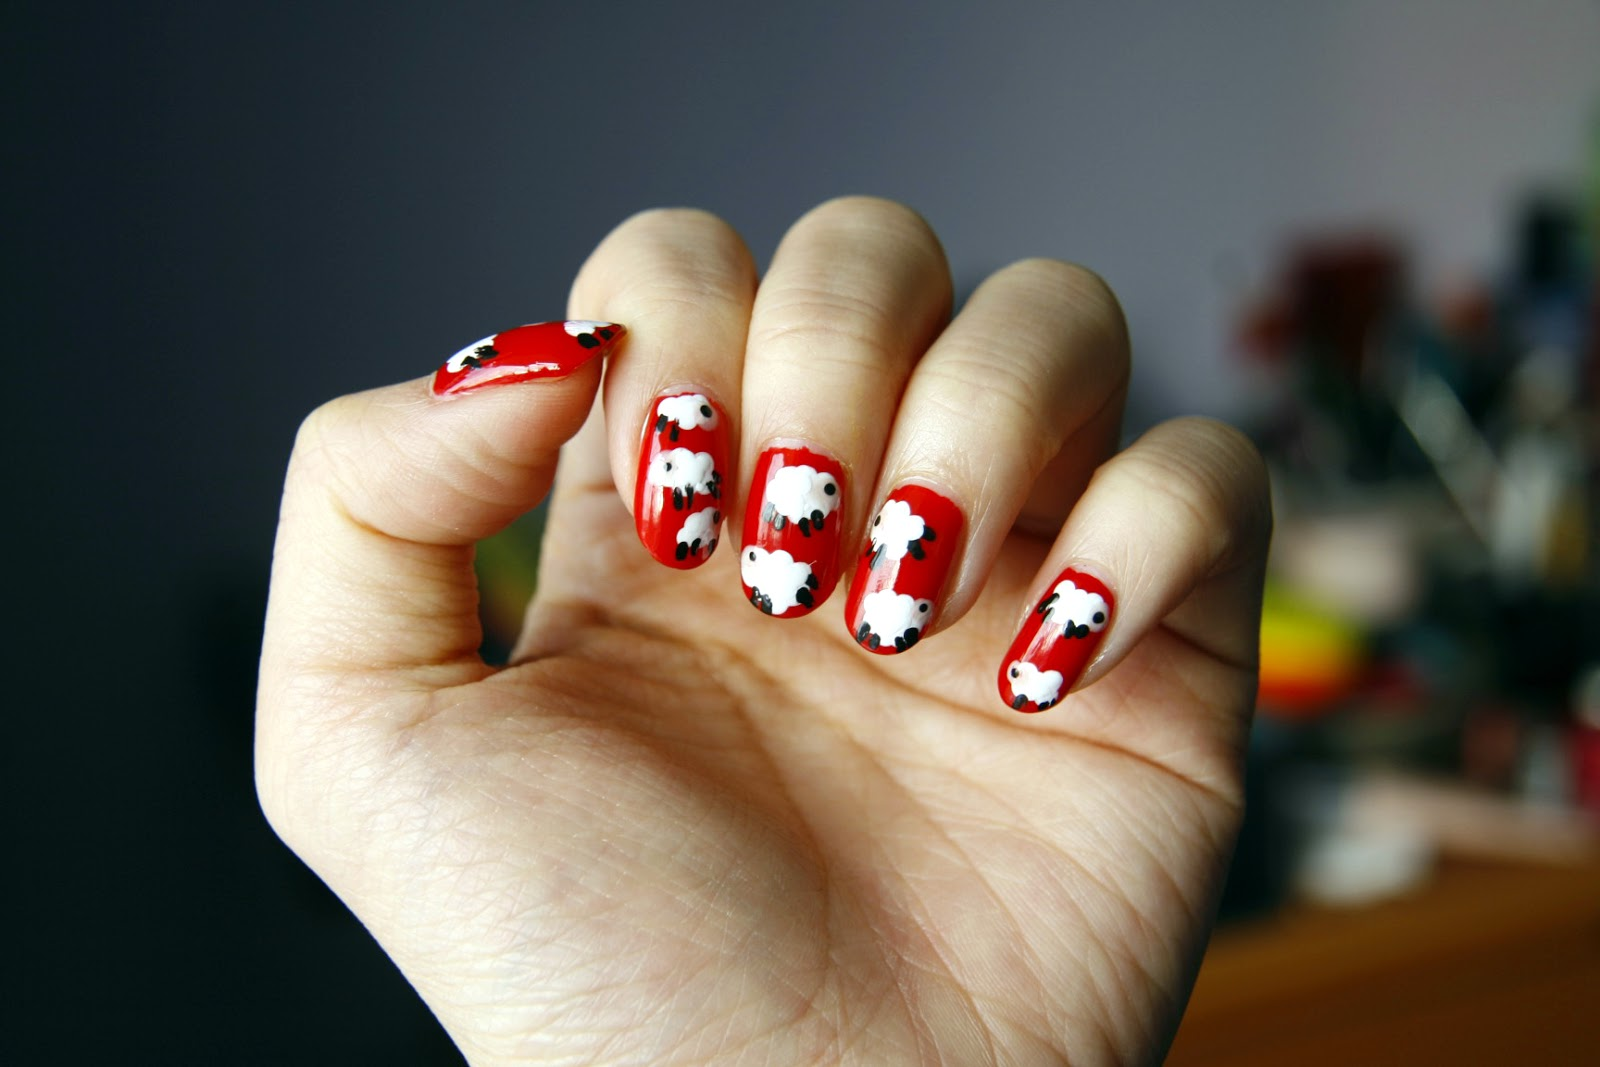 Chinese new year nail art tutorial best nails 2018 chinese new year nail designs 2016 best ideas prinsesfo Images